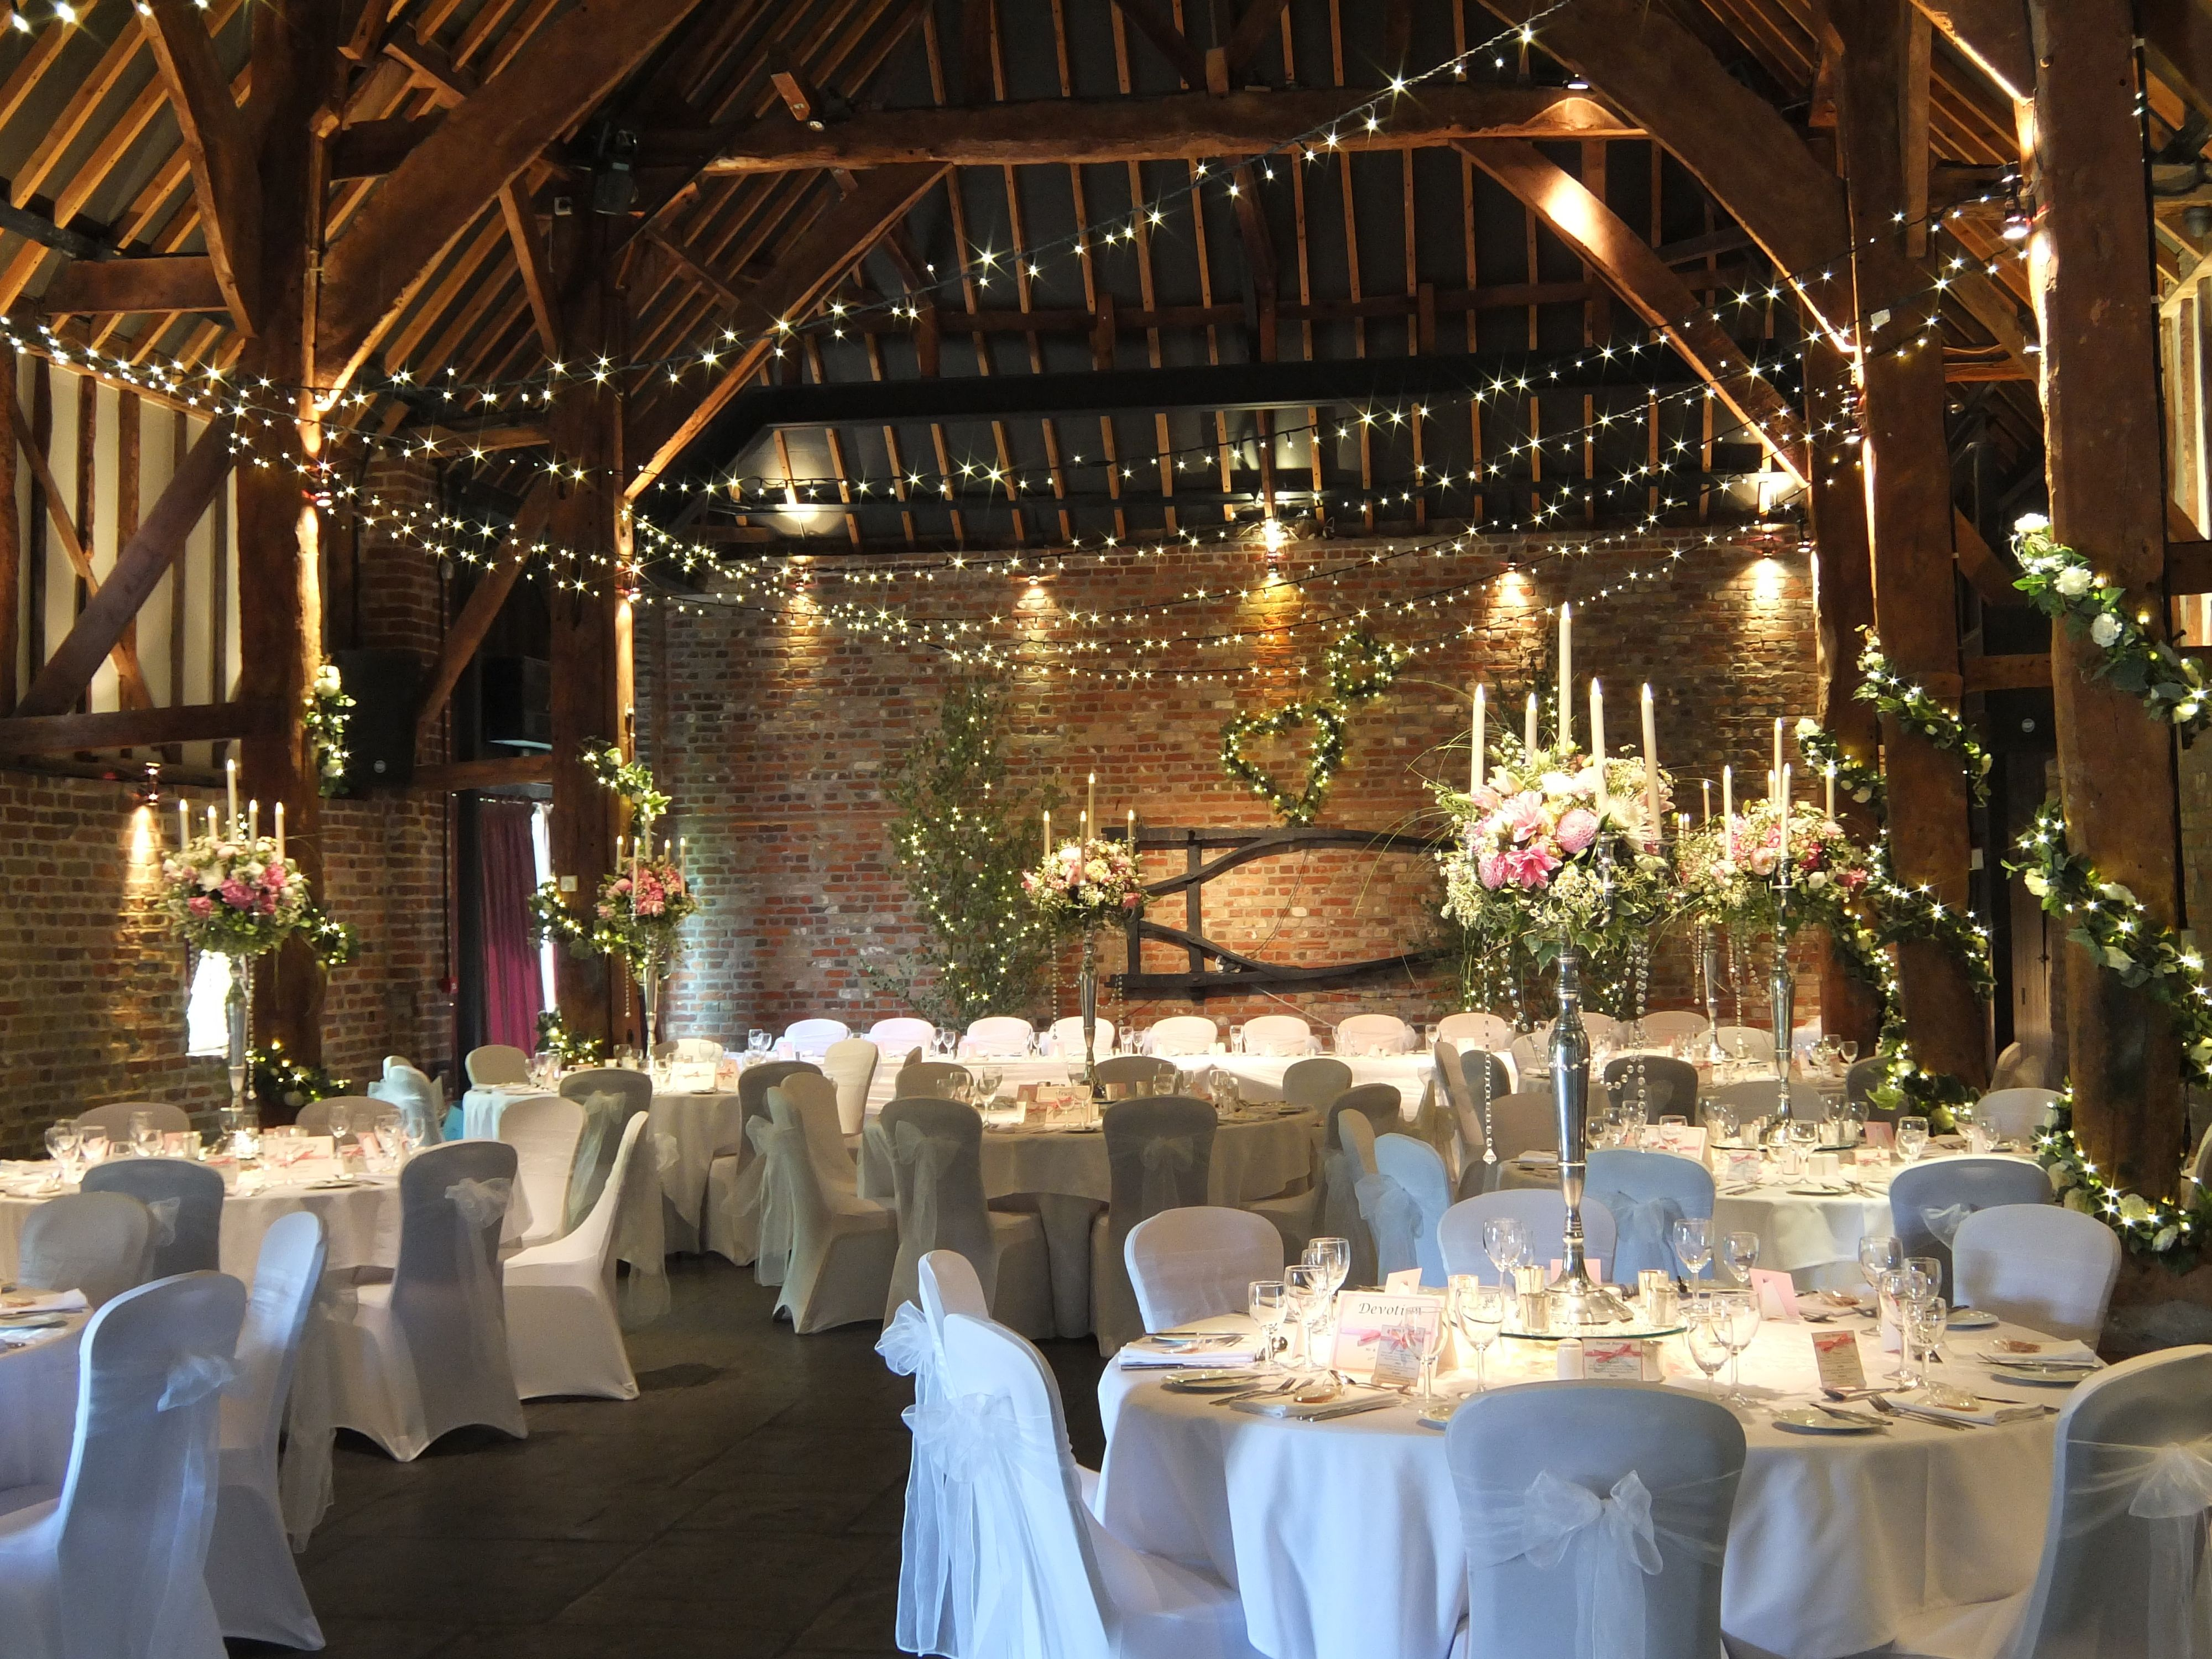 wedding venue decoration ideas the tithe barn wedding venue in kent a can 1206